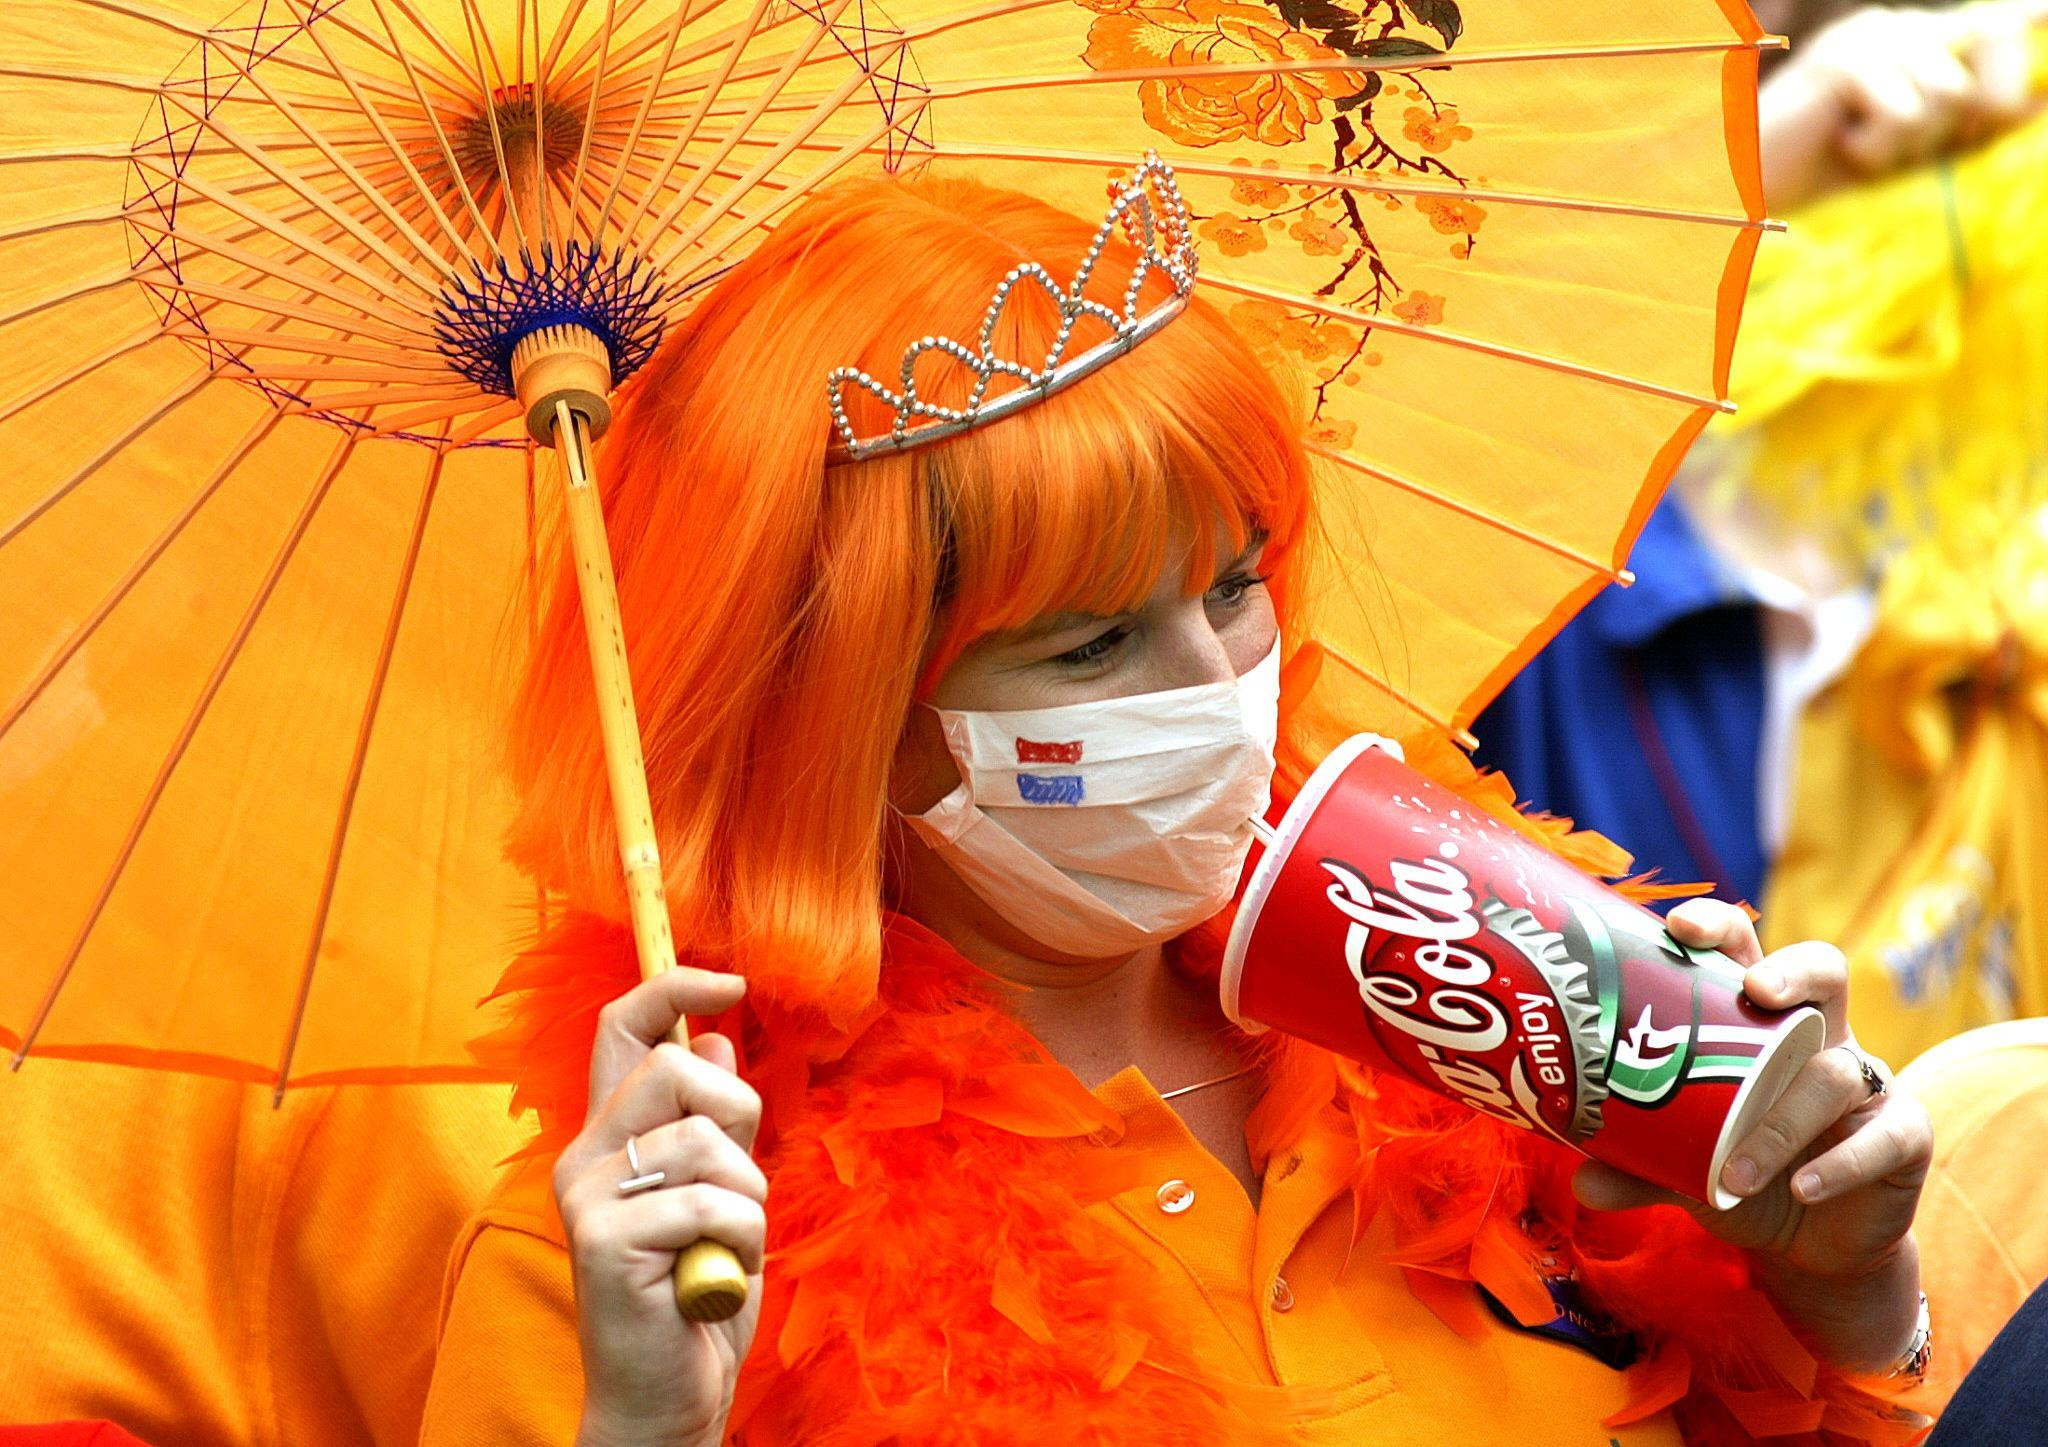 A fan at the 2003 Hong Kong Sevens, which went ahead amid the SARS outbreak ©Getty Images